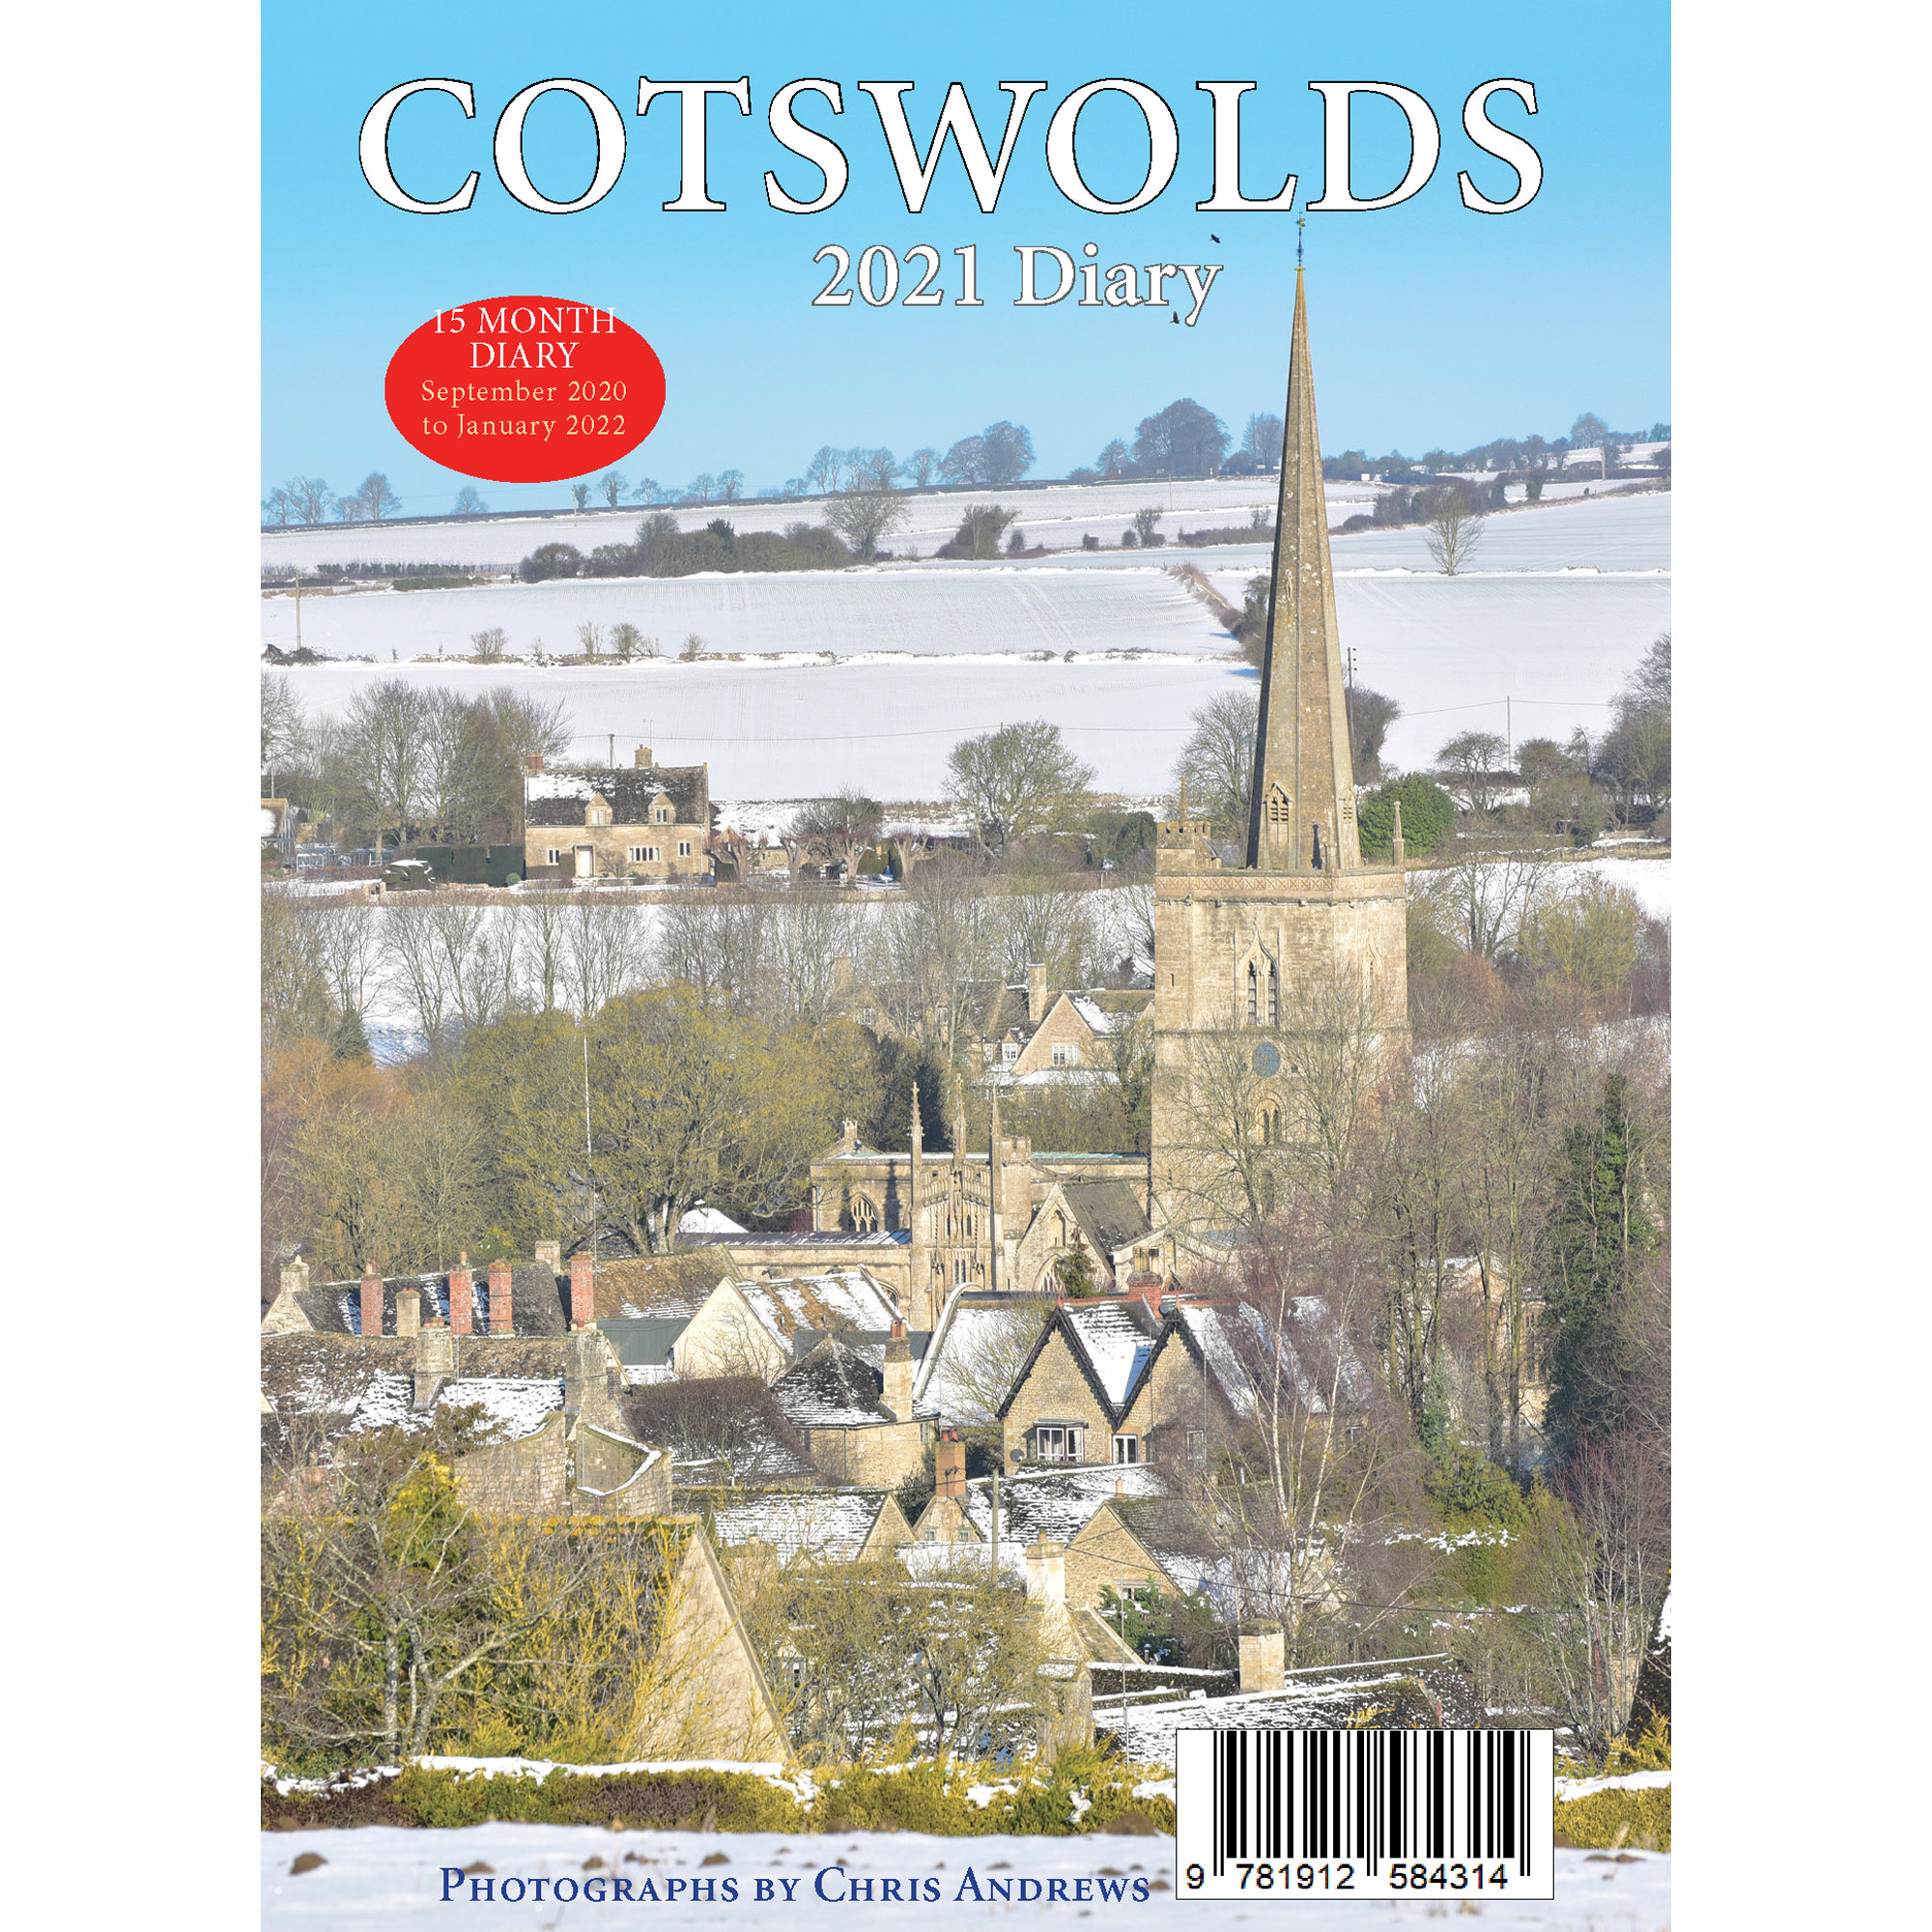 2021 Cotswolds diary - back cover